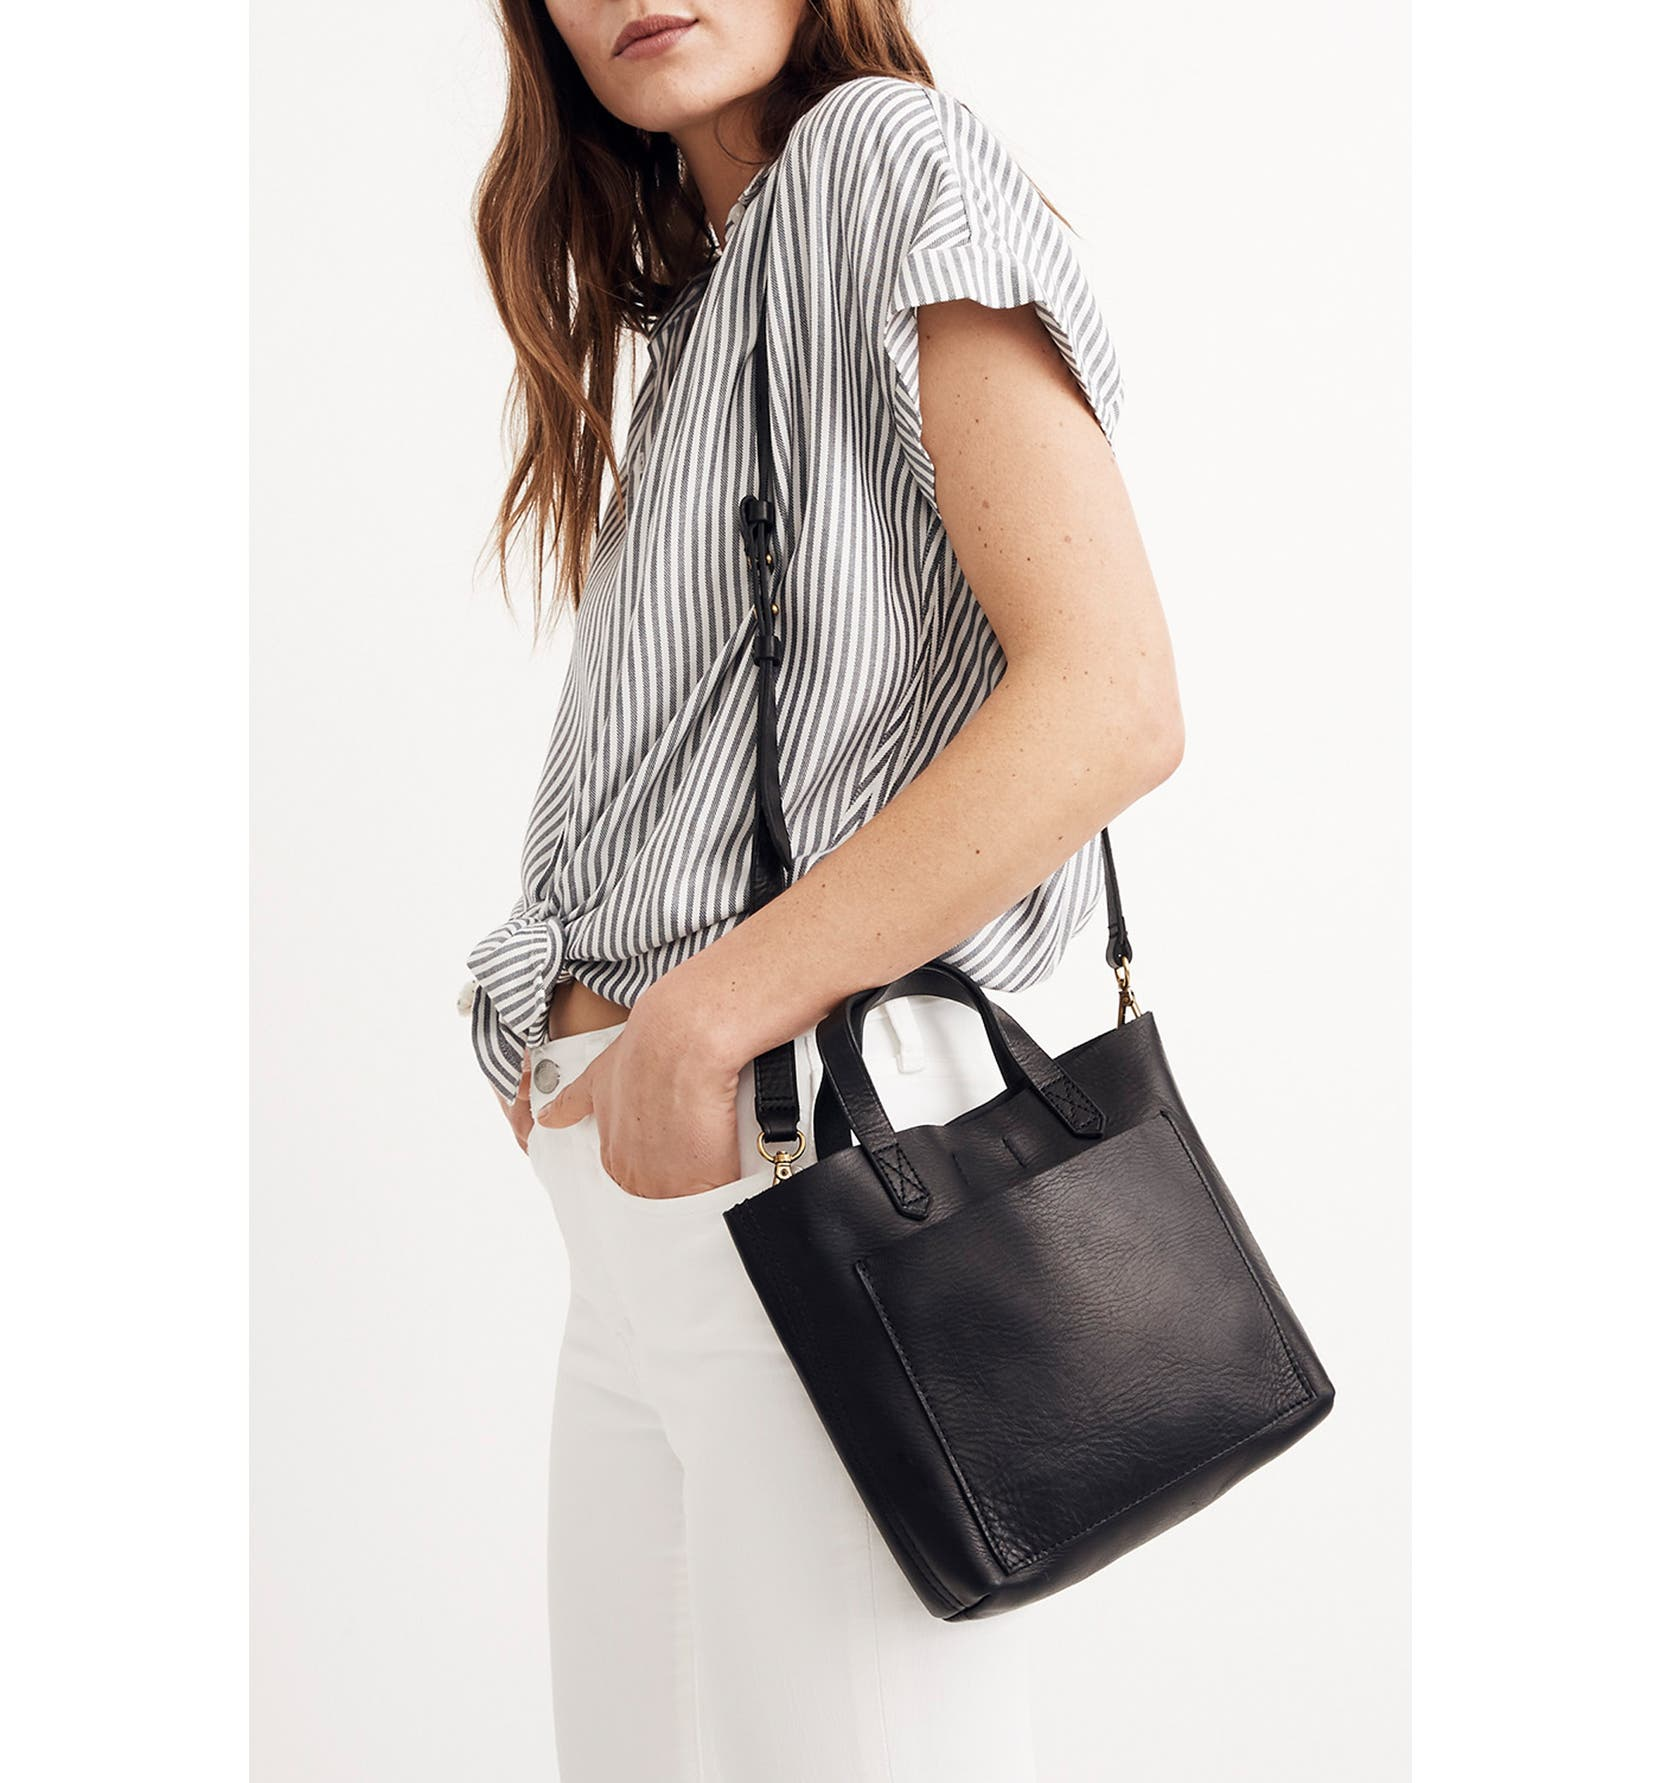 a9599cee1 Madewell Small Transport Leather Crossbody | Nordstrom